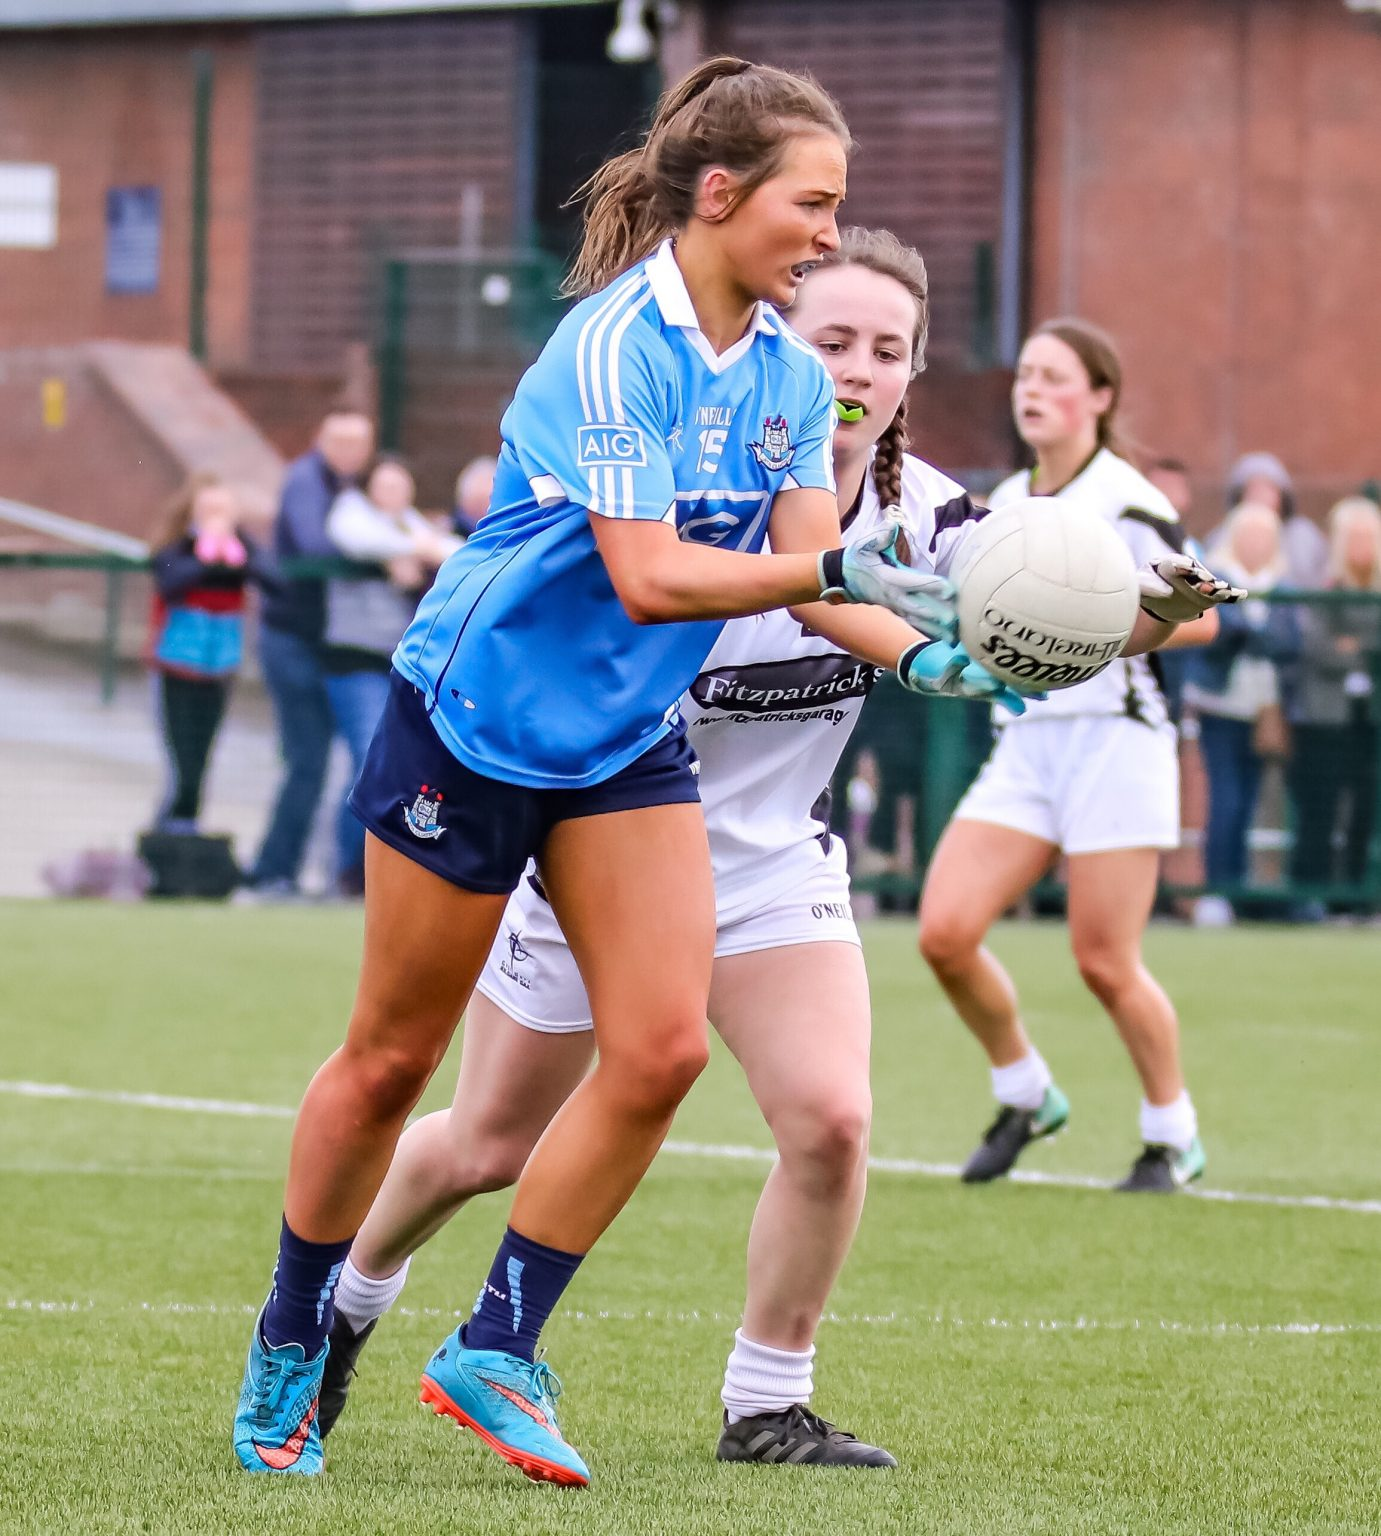 Dublin Minor Ladies Footballers Beat Kildare In Leinster Semi Final